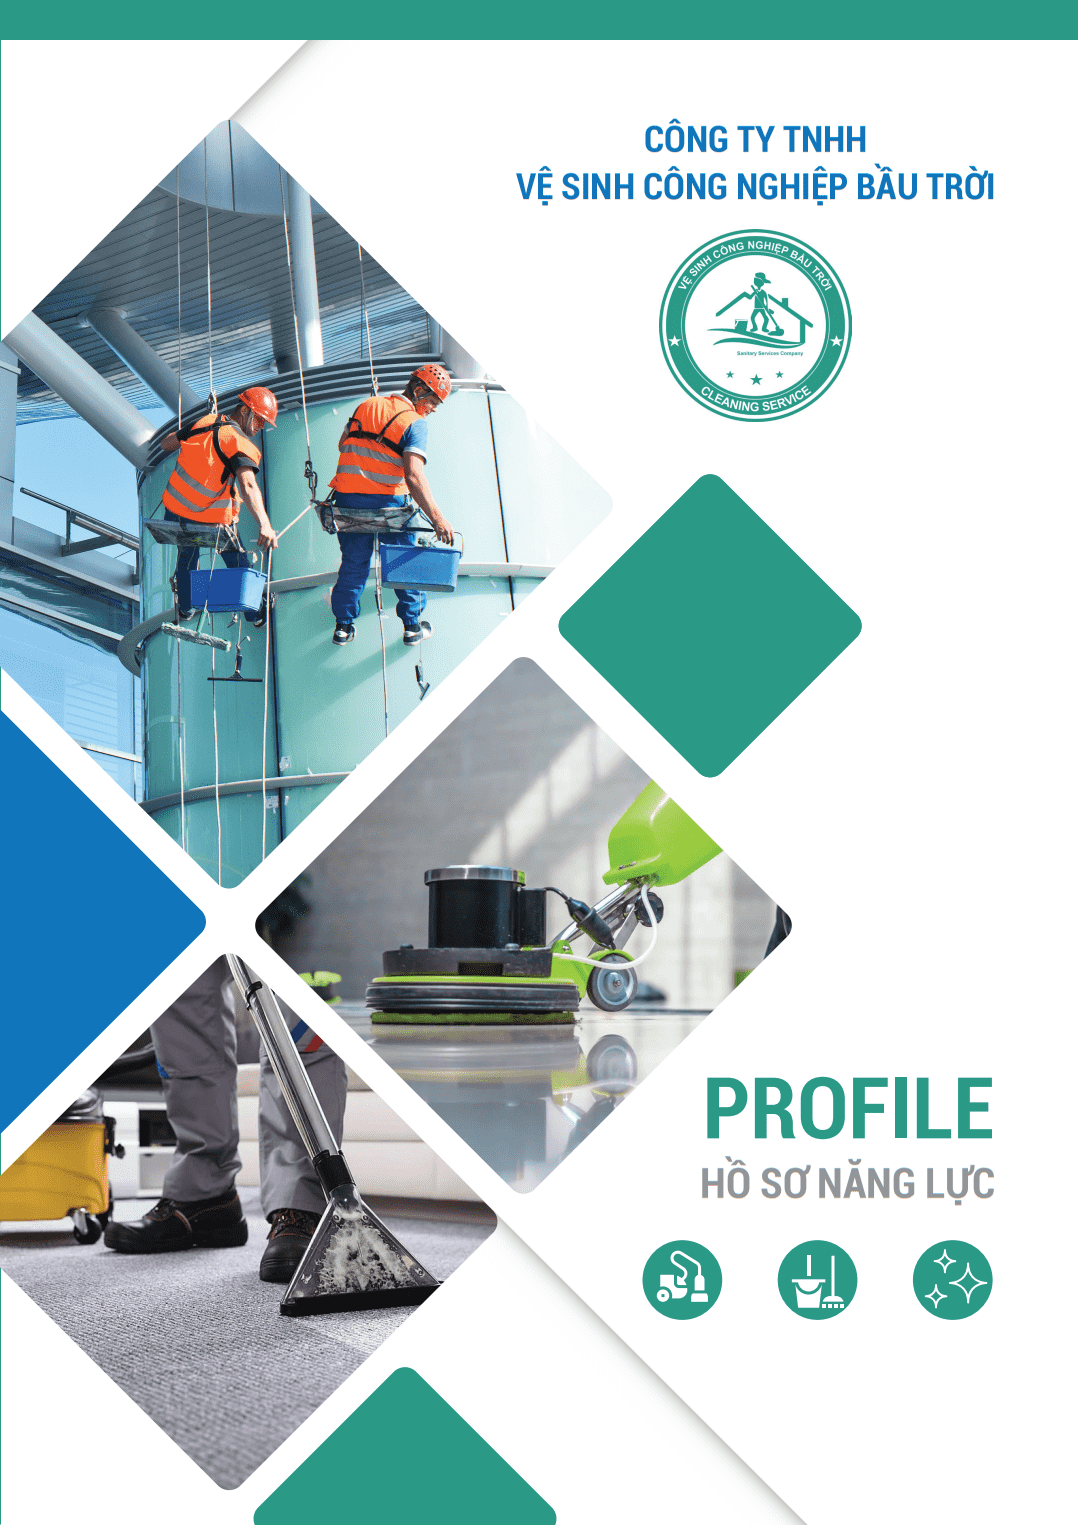 Vệ sinh công nghiệp - SKY CLEANING SERVICES - PROFILE 1